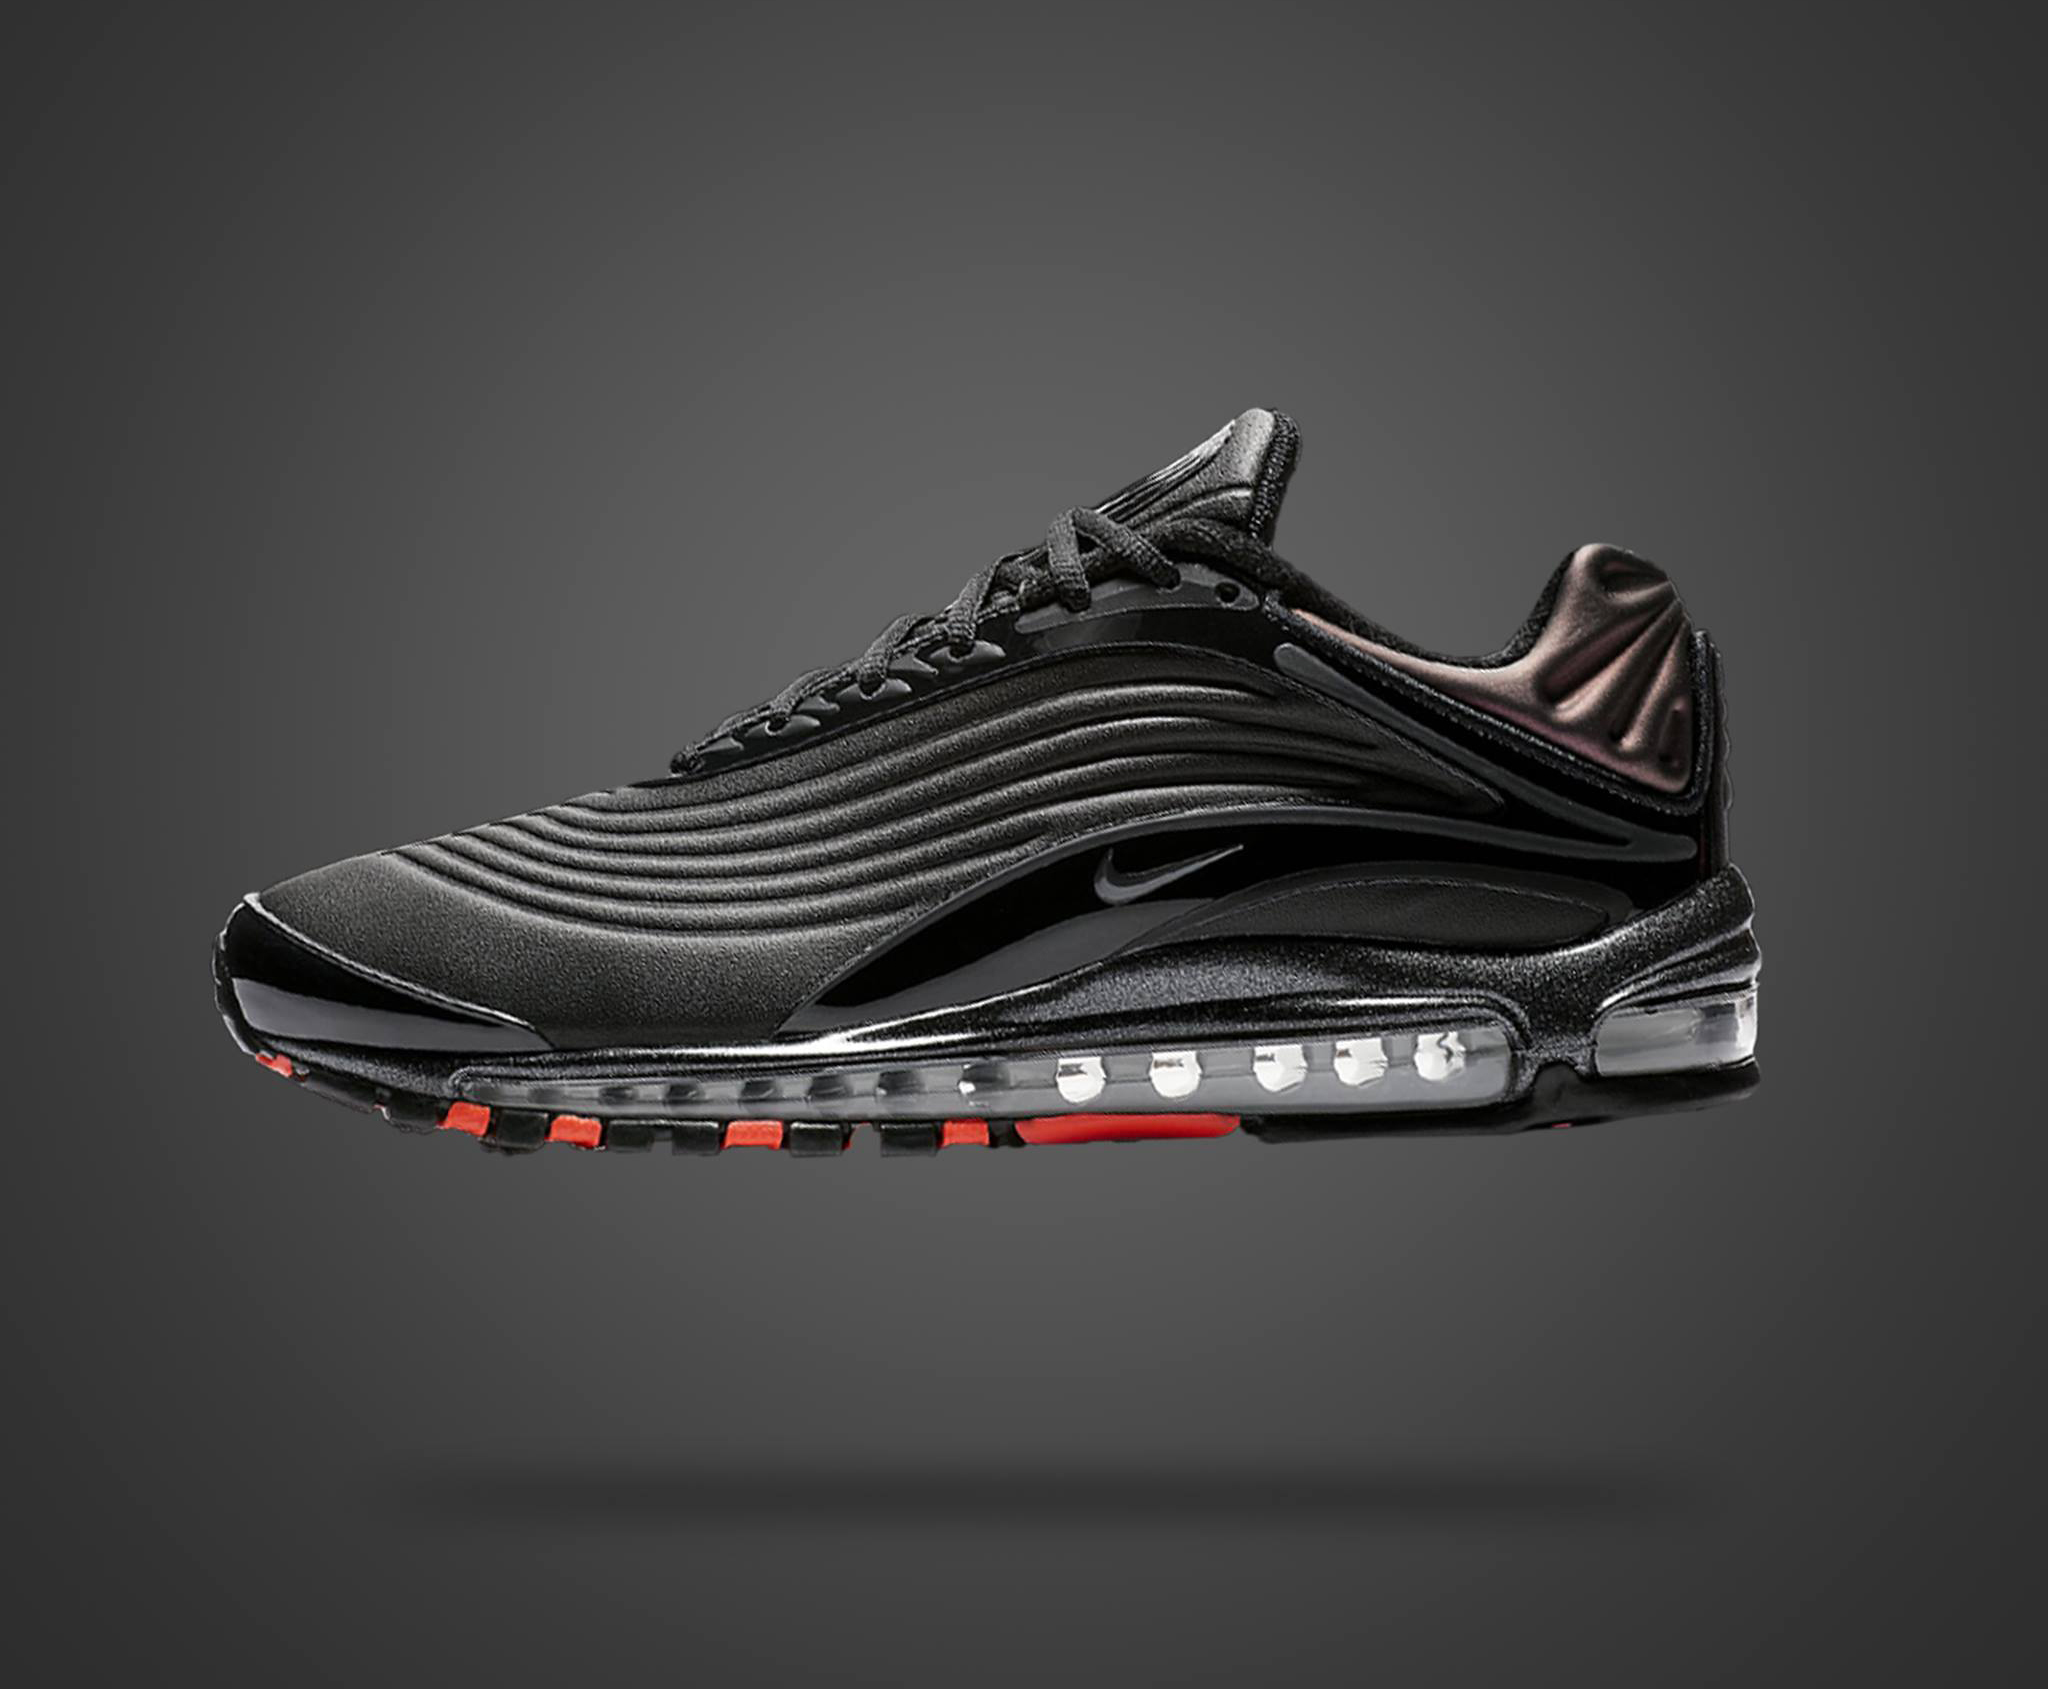 Nike Air Max Deluxe Black & White | Now Available | HAVEN